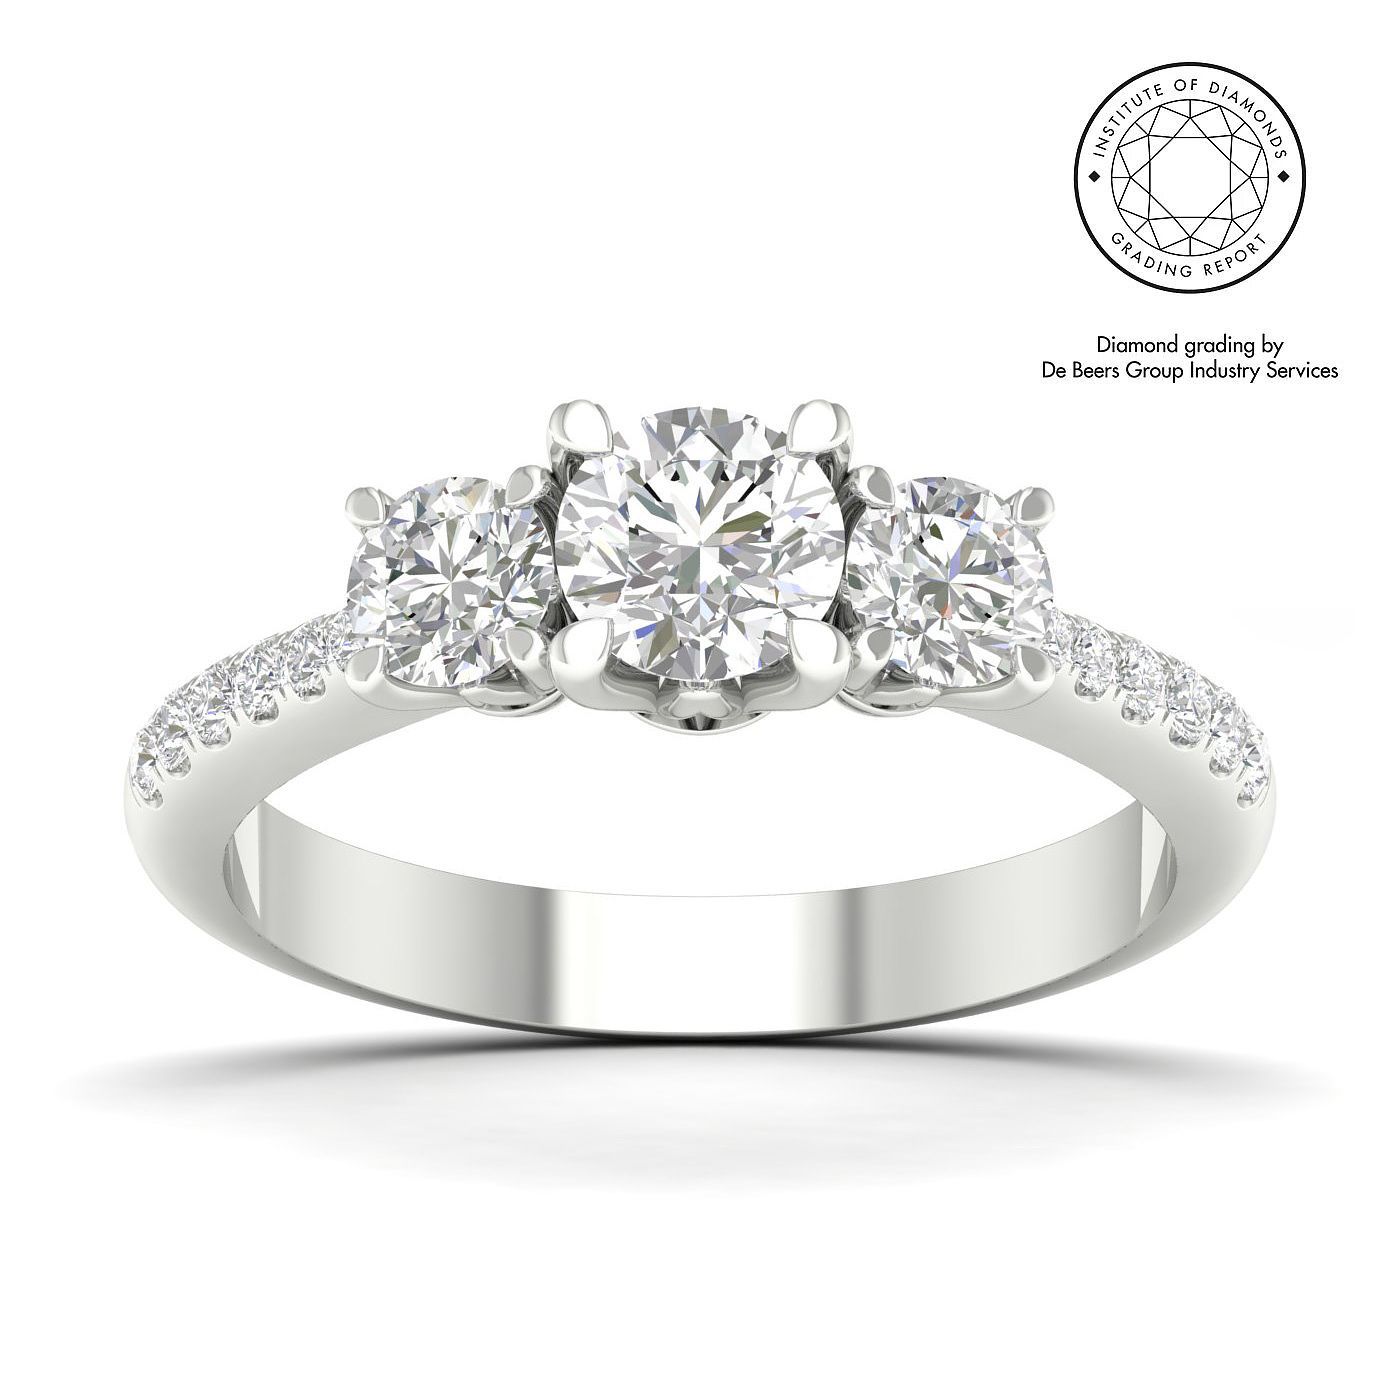 18ct White Gold & Platinum 1ct Diamond Ring - Product number 5334128